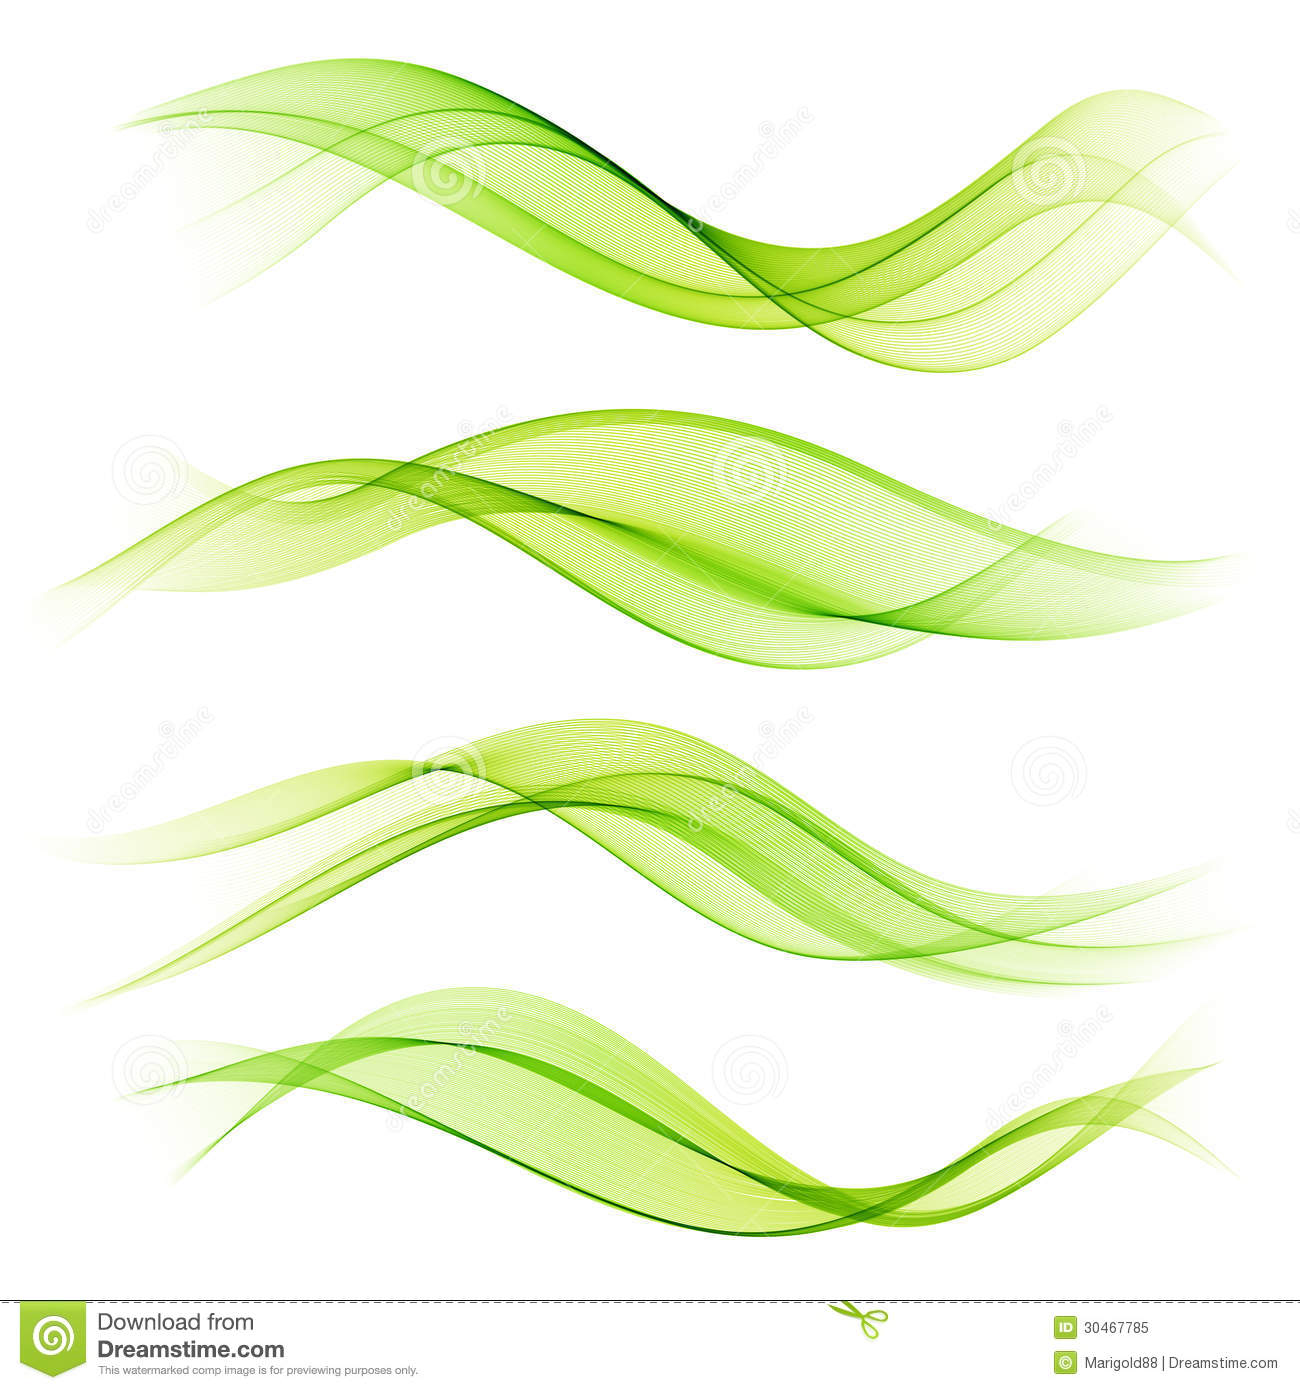 Abstract Wave Design Element Royalty Free Stock Photo - Image ...